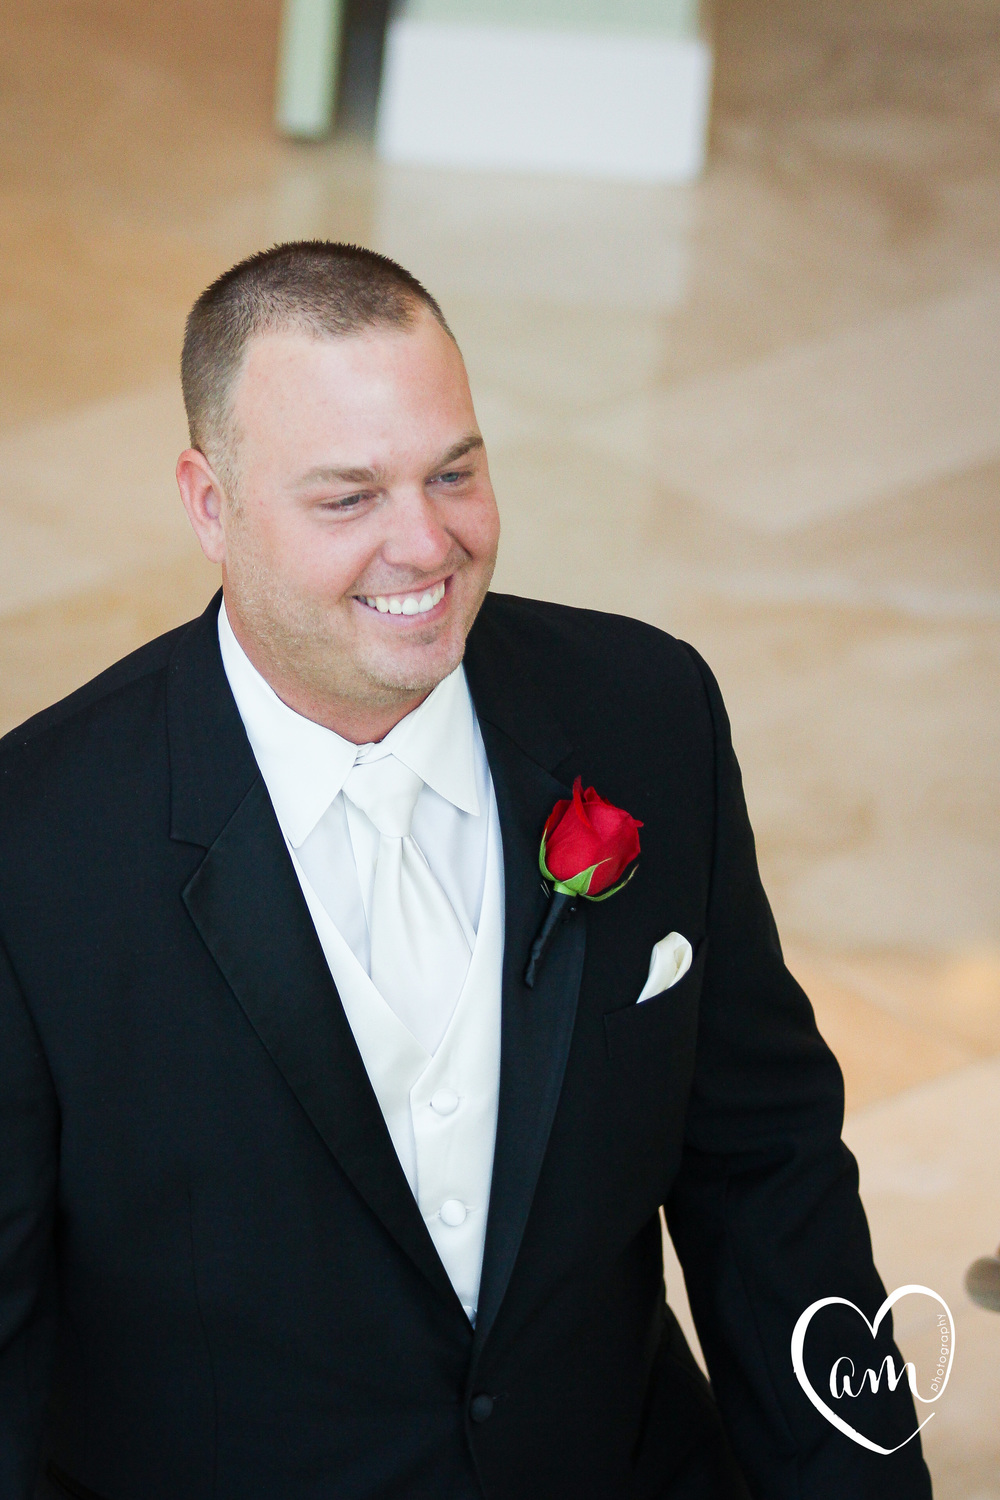 Groom tears up as he sees bride for first time during first look before the ceremony